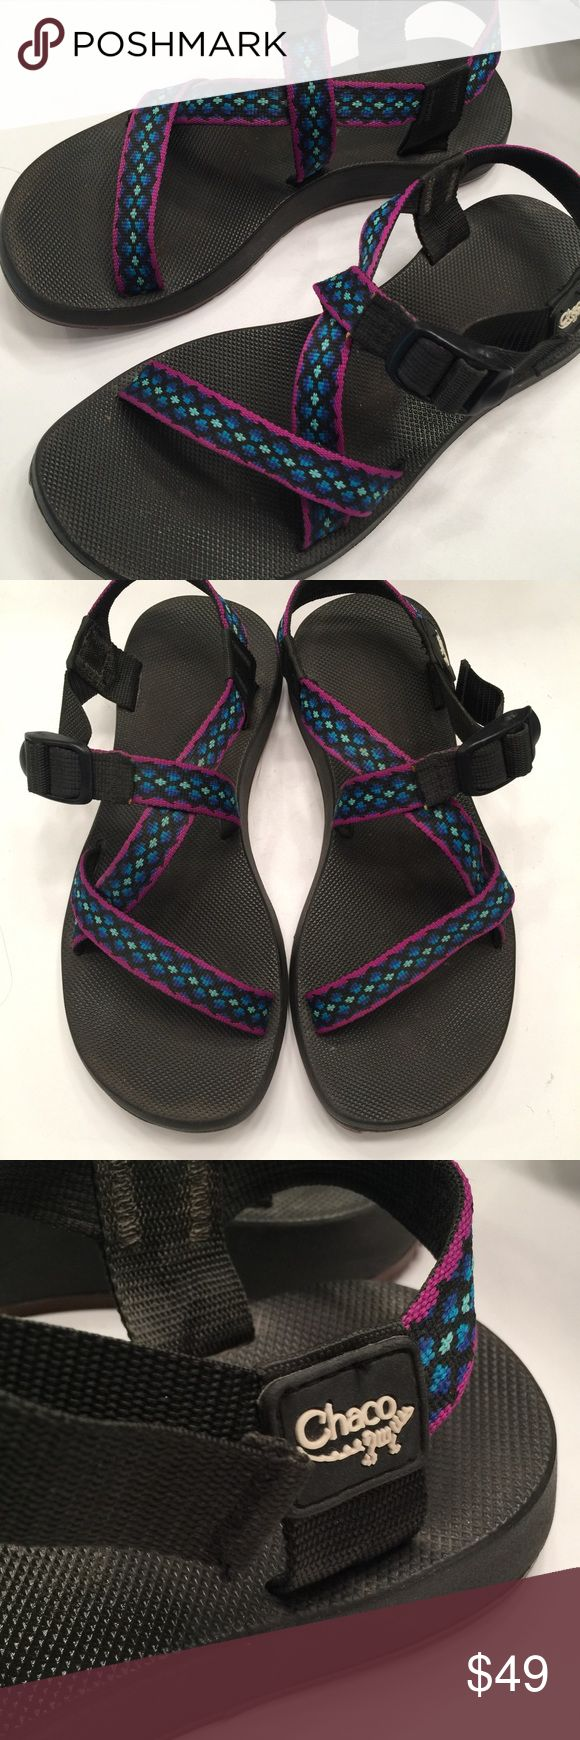 Chaco Classics size 8 purple and blue. Good used condition. Only minimal wear to the bottoms. No appreciable flaws. Chaco Shoes Sandals